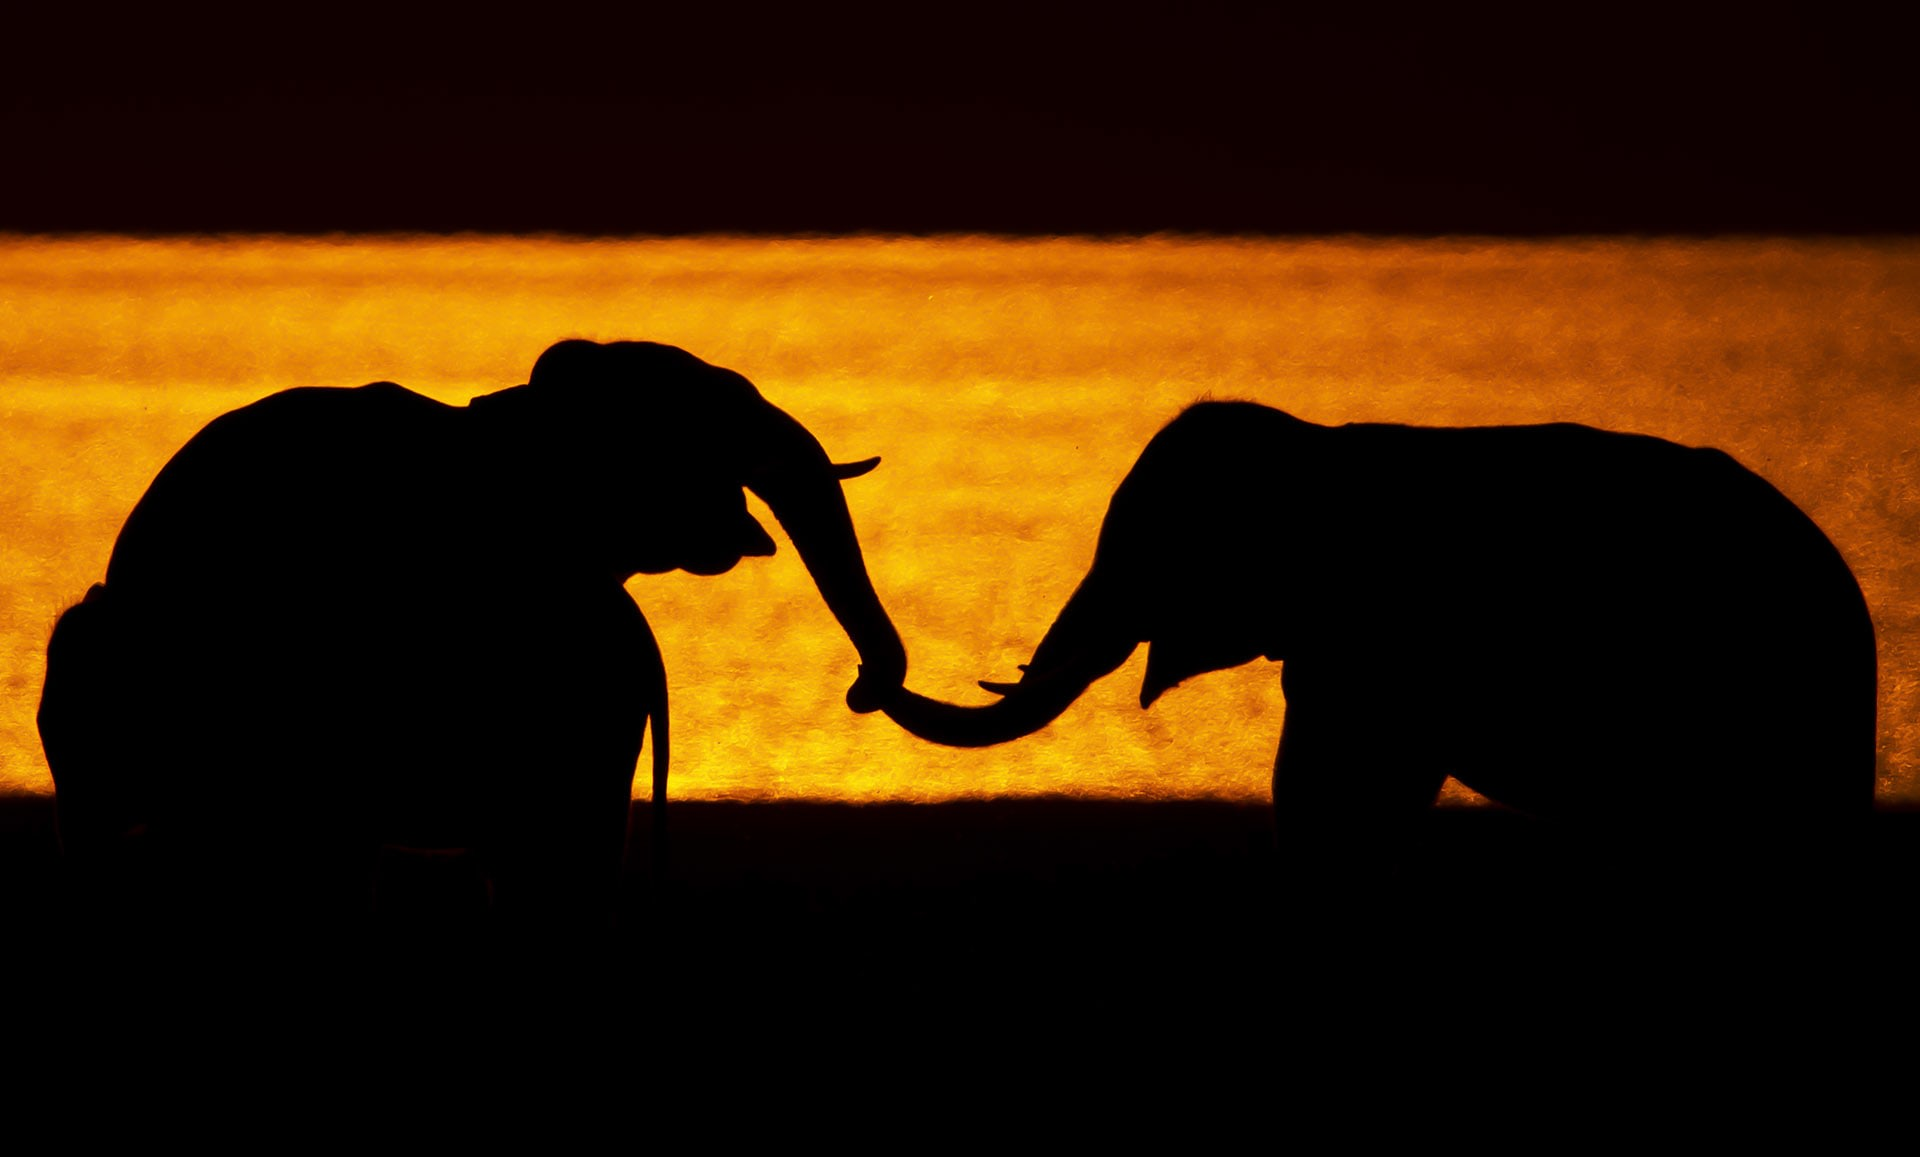 """Tactile communication, or communication by touch, is what """"elephants use to exhibit reassurance, affection and affiliation, exploration, aggression, and play,"""" write TNC Vidya and R Sukumar in a paper on social and reproductive behaviour of elephants published in Current Science . """"The trunk tip is placed on another elephant's mouth during reassurance, and on the ears, mouth, eyes, tail, and body, while greeting family members that were separated for a while."""" Tactile communication is often used between mothers and calves and among young elephants during play."""